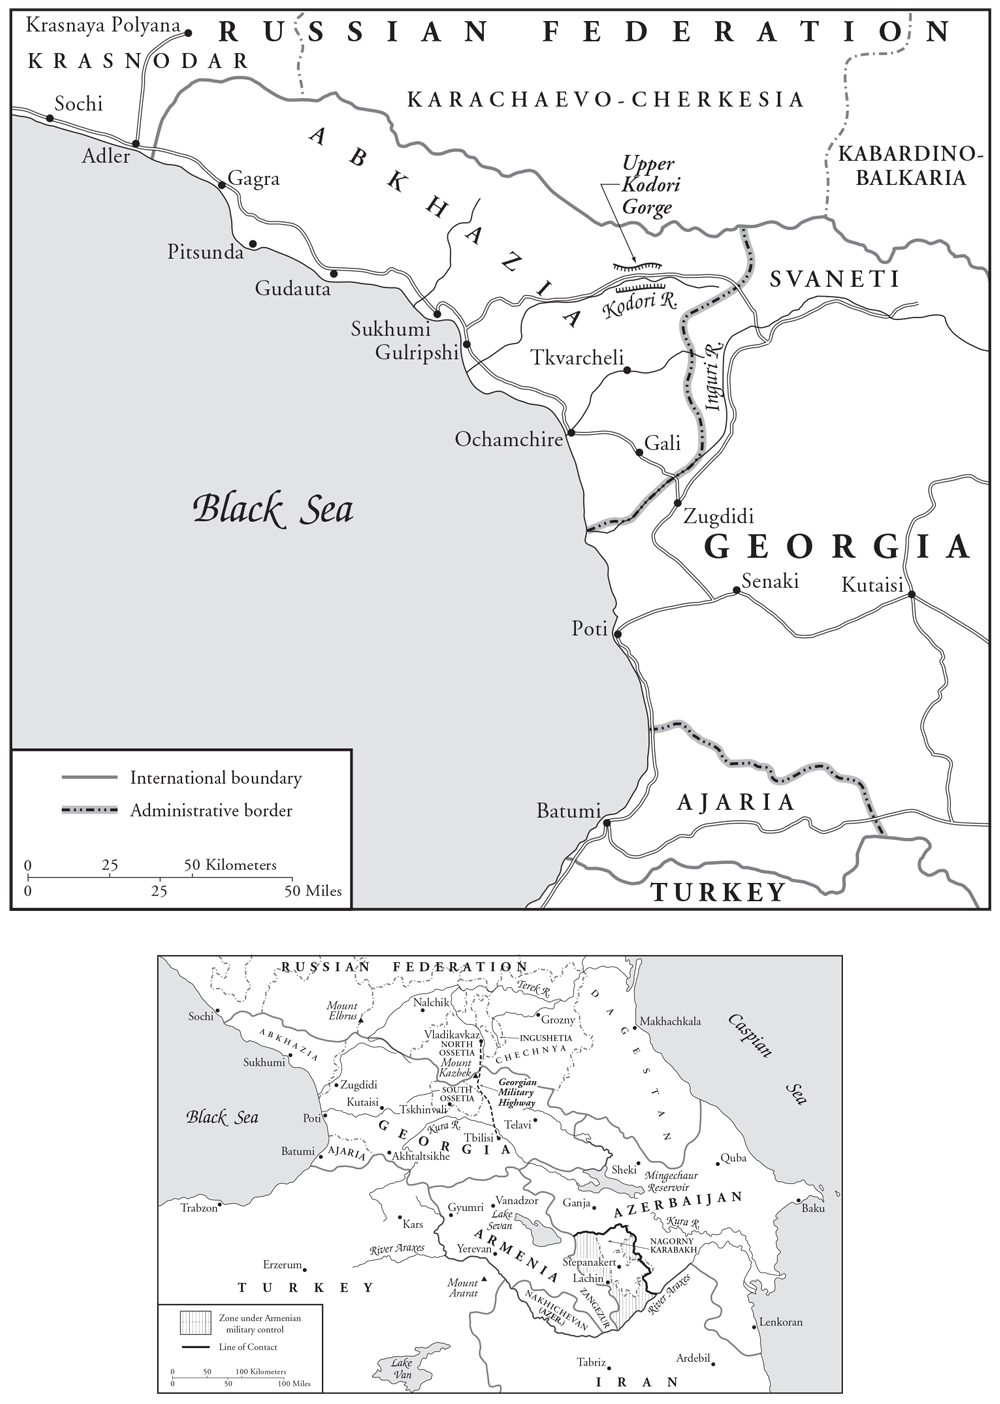 Abkhazia: Stable Isolation - Uncertain Ground: Ening With ... on mestia georgia map, denmark georgia map, north carolina georgia map, chechnya georgia map, batumi georgia map, kobuleti georgia map, ukraine georgia map, eastern europe georgia map, armenia georgia map, poti georgia map, gori georgia map, estonia georgia map, iran georgia map, republic georgia map, krubera cave georgia map, svaneti georgia map, tbilisi georgia map, dmanisi georgia map, russia georgia map, adjara georgia map,